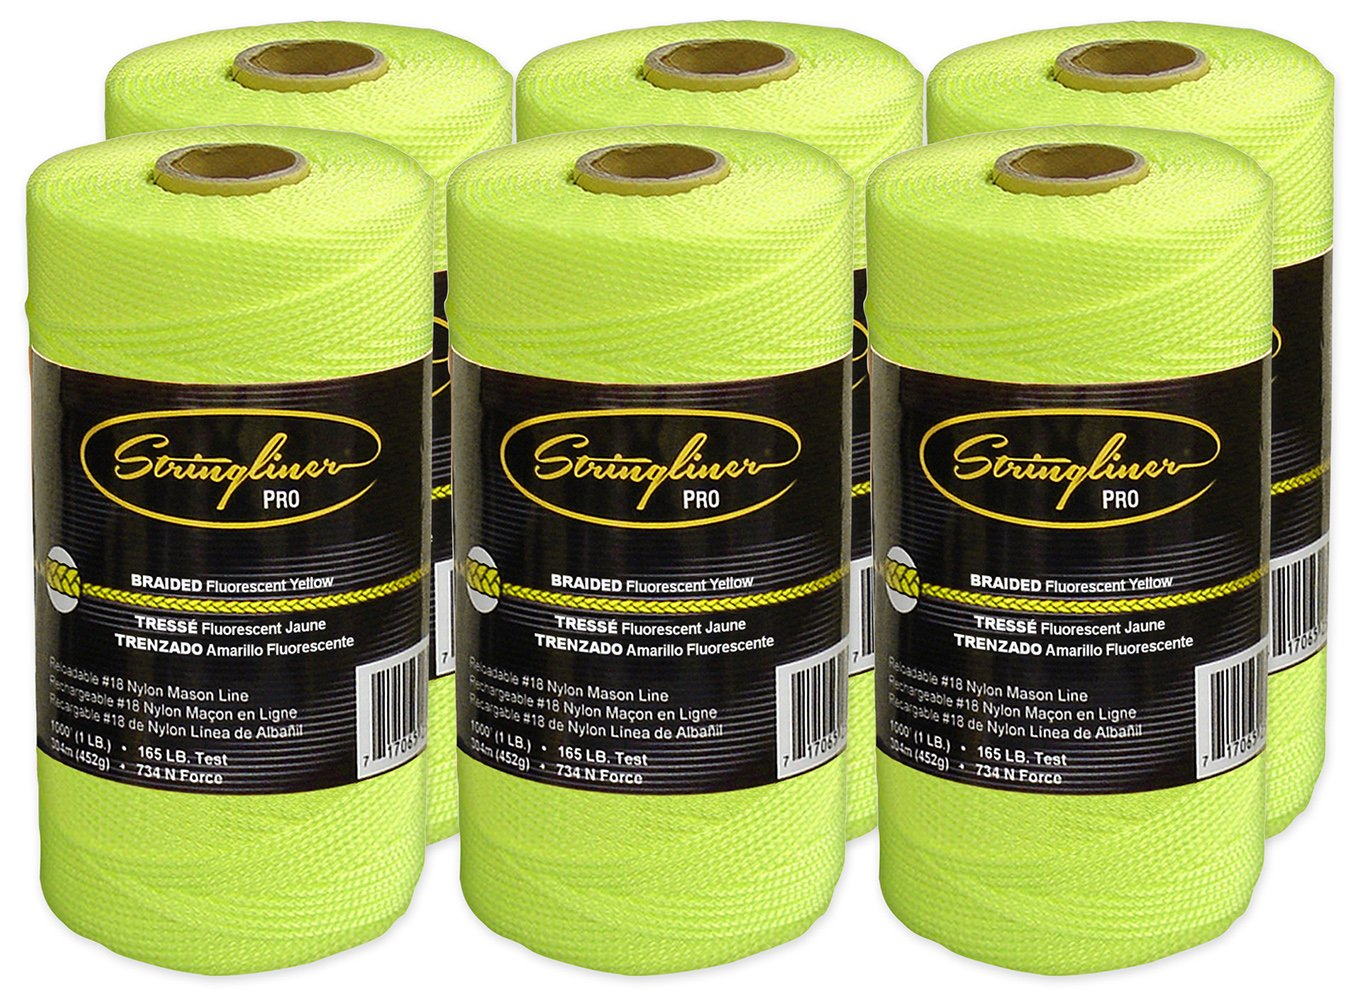 Stringliner Braided Mason Line Replacement Roll Contractor Pack 1,000' - Fluorescent Yellow (6 Pack) - SL35765CPK by Stringliner